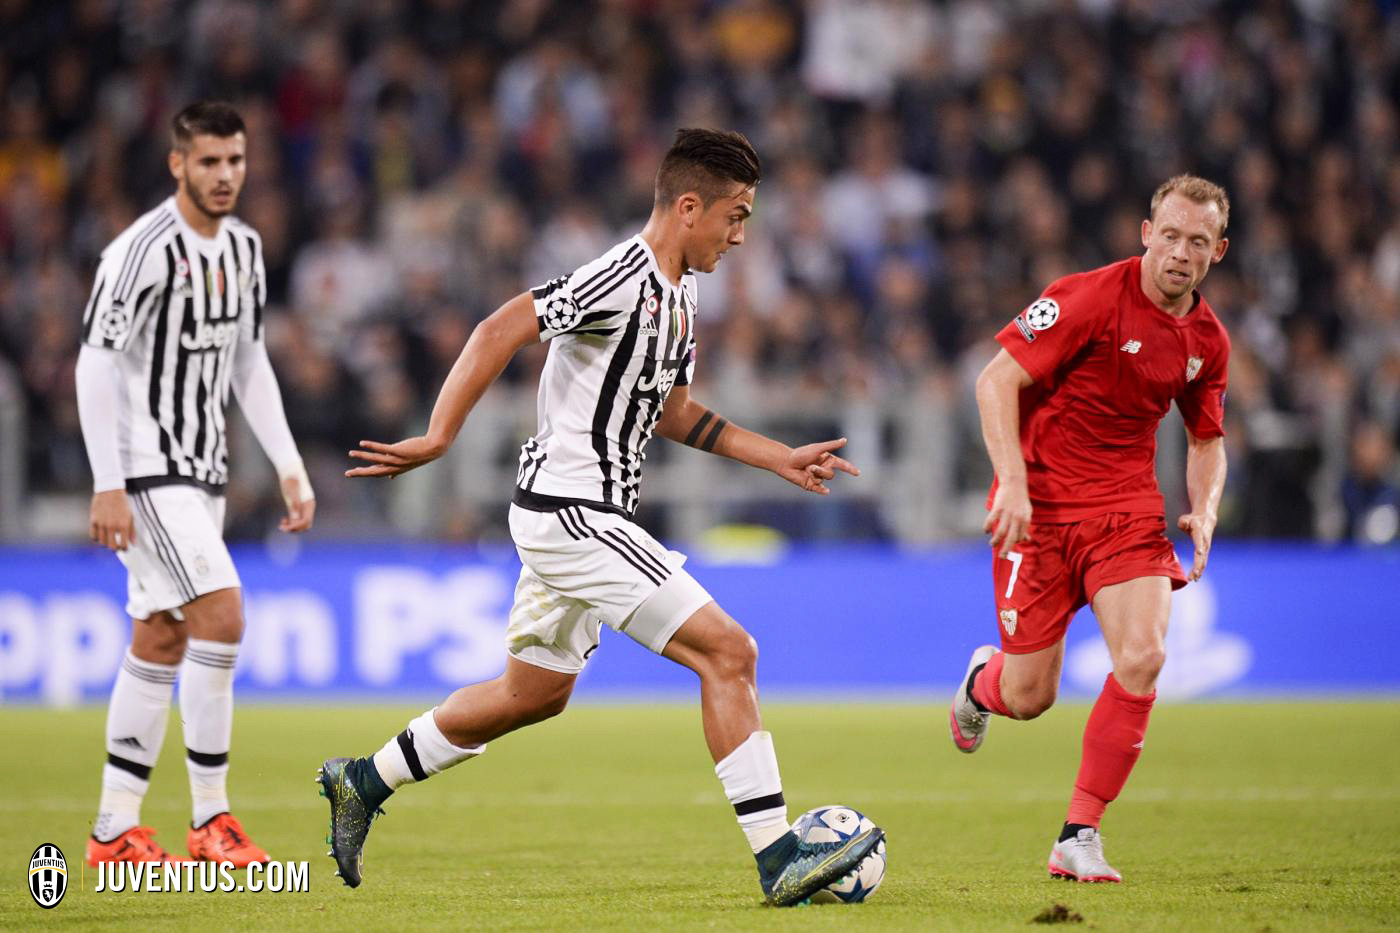 Can Juve kick start their campaign after a tough start against Sevilla?